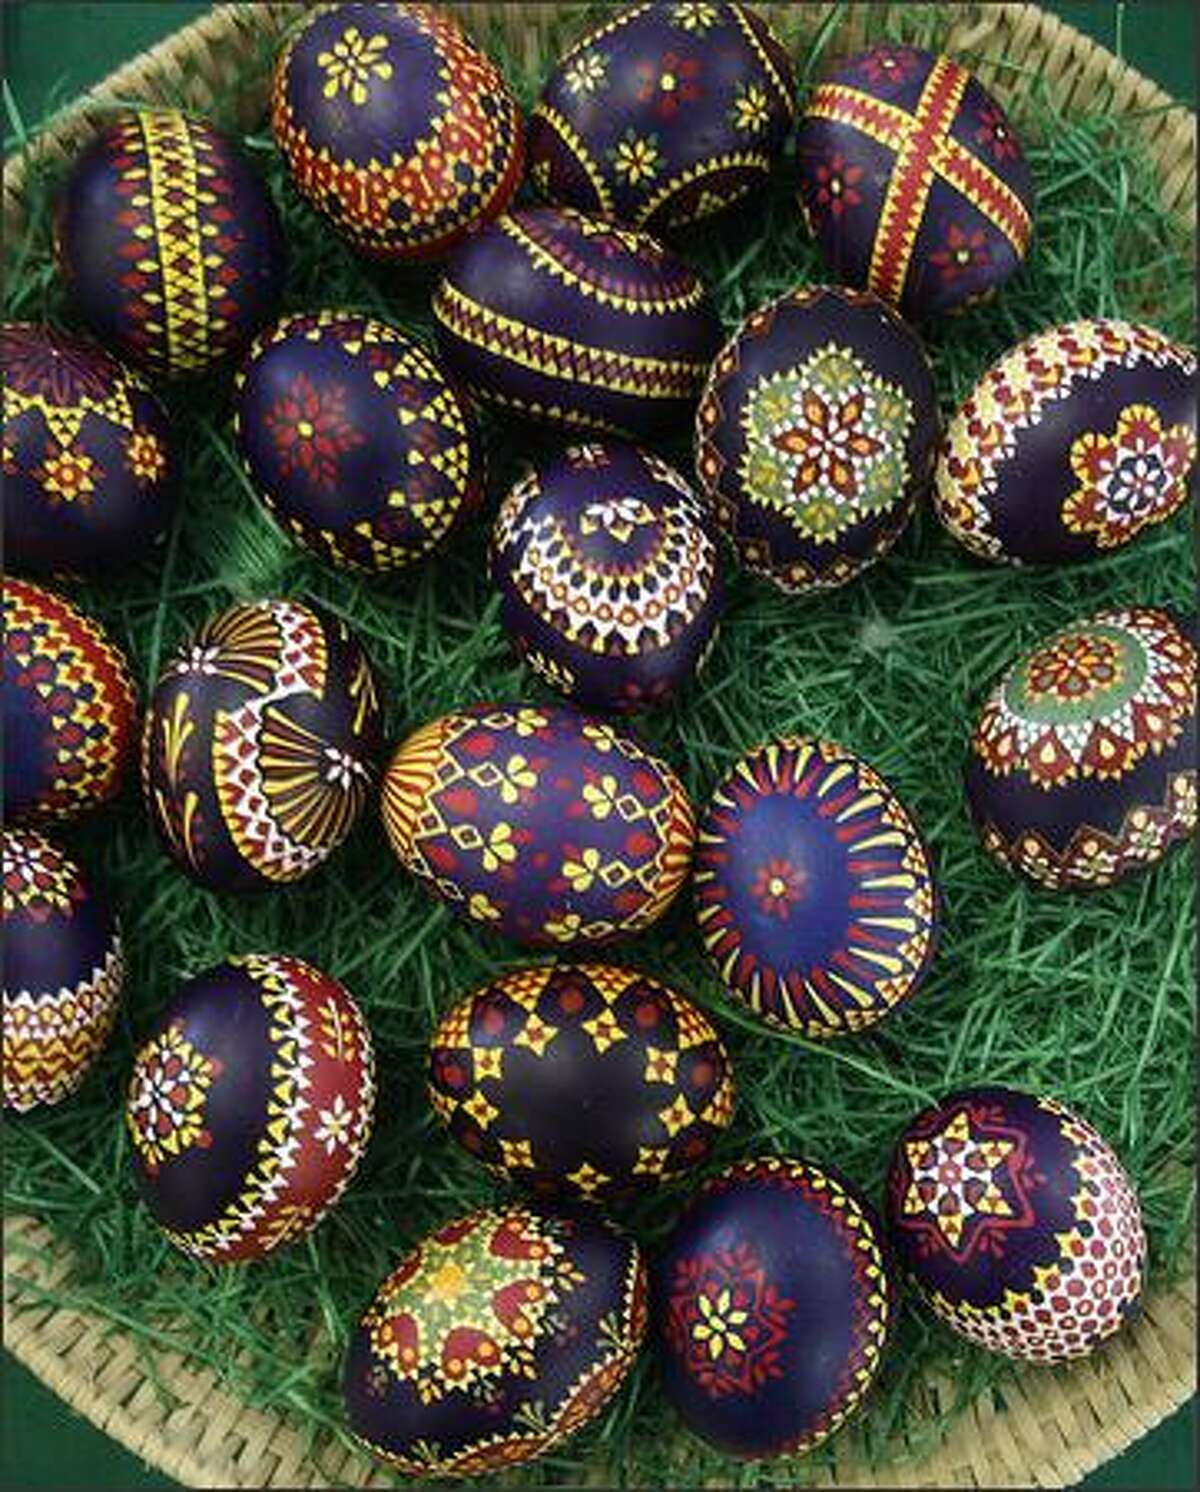 Traditionally hand-painted Easter eggs are on display for sale in the eastern German village of Schleife. A goose feather is used to decorate the eggs with wax, which are then dipped into colored dye several times in this traditional painting method by members of the Slavic ethnic minority community of Sorbs. Each color that is applied takes one hour.